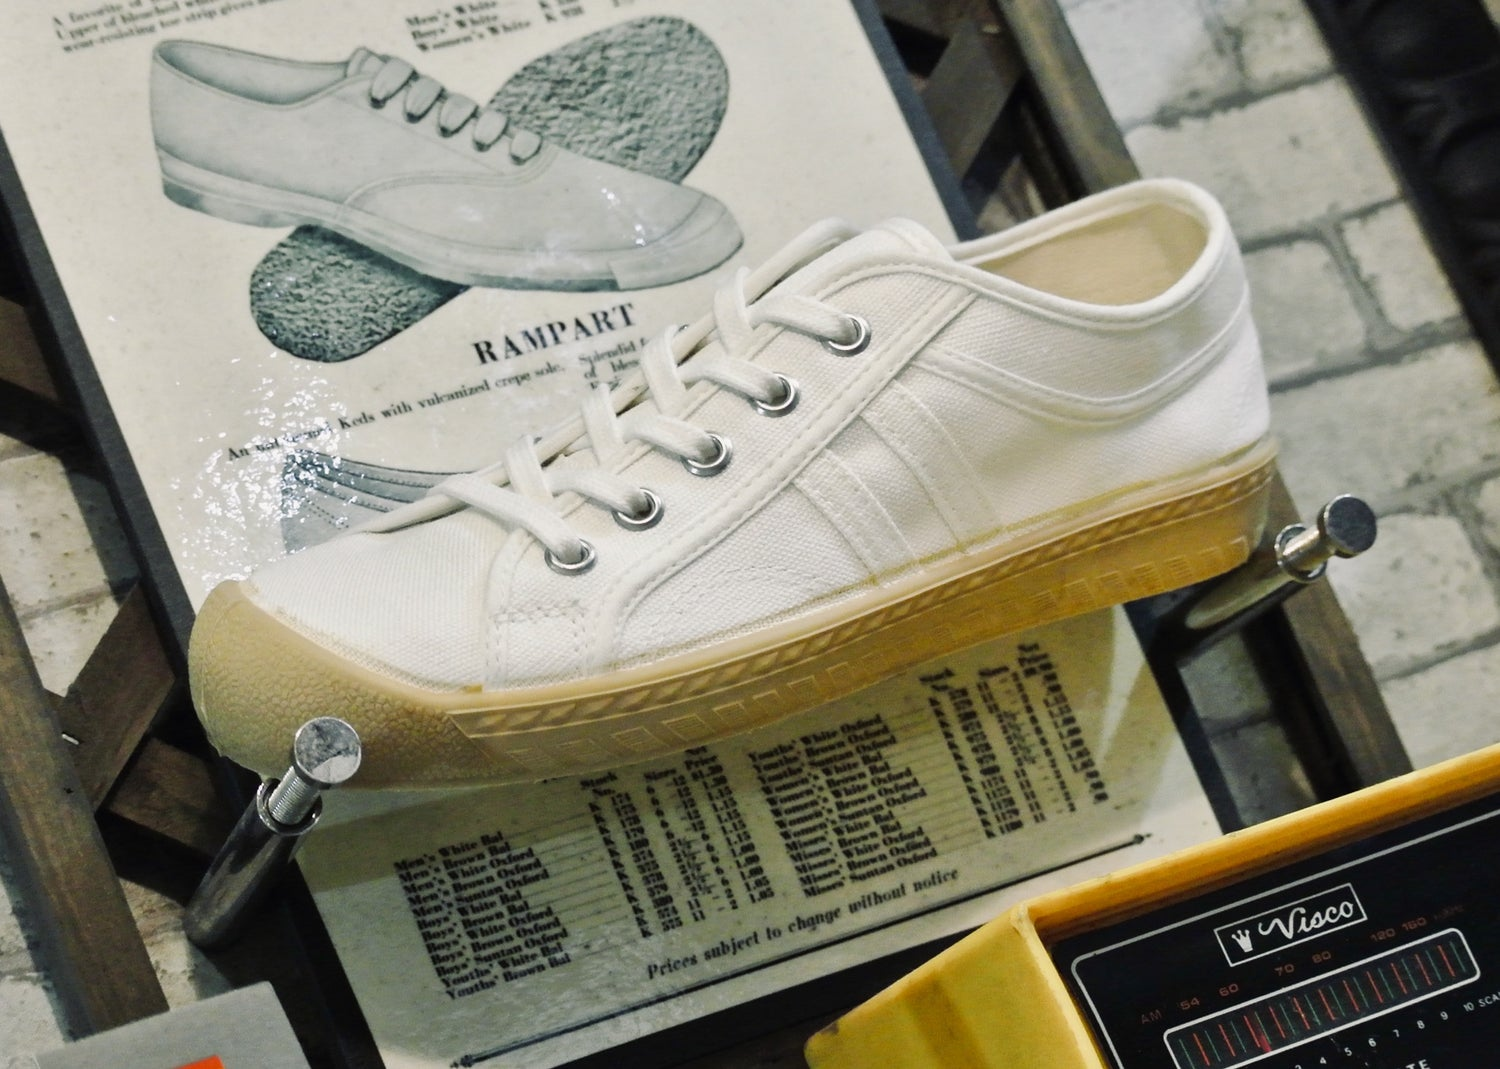 Image of Inn-stant white canvas gum sole lo sneaker shoes made in Slovakia